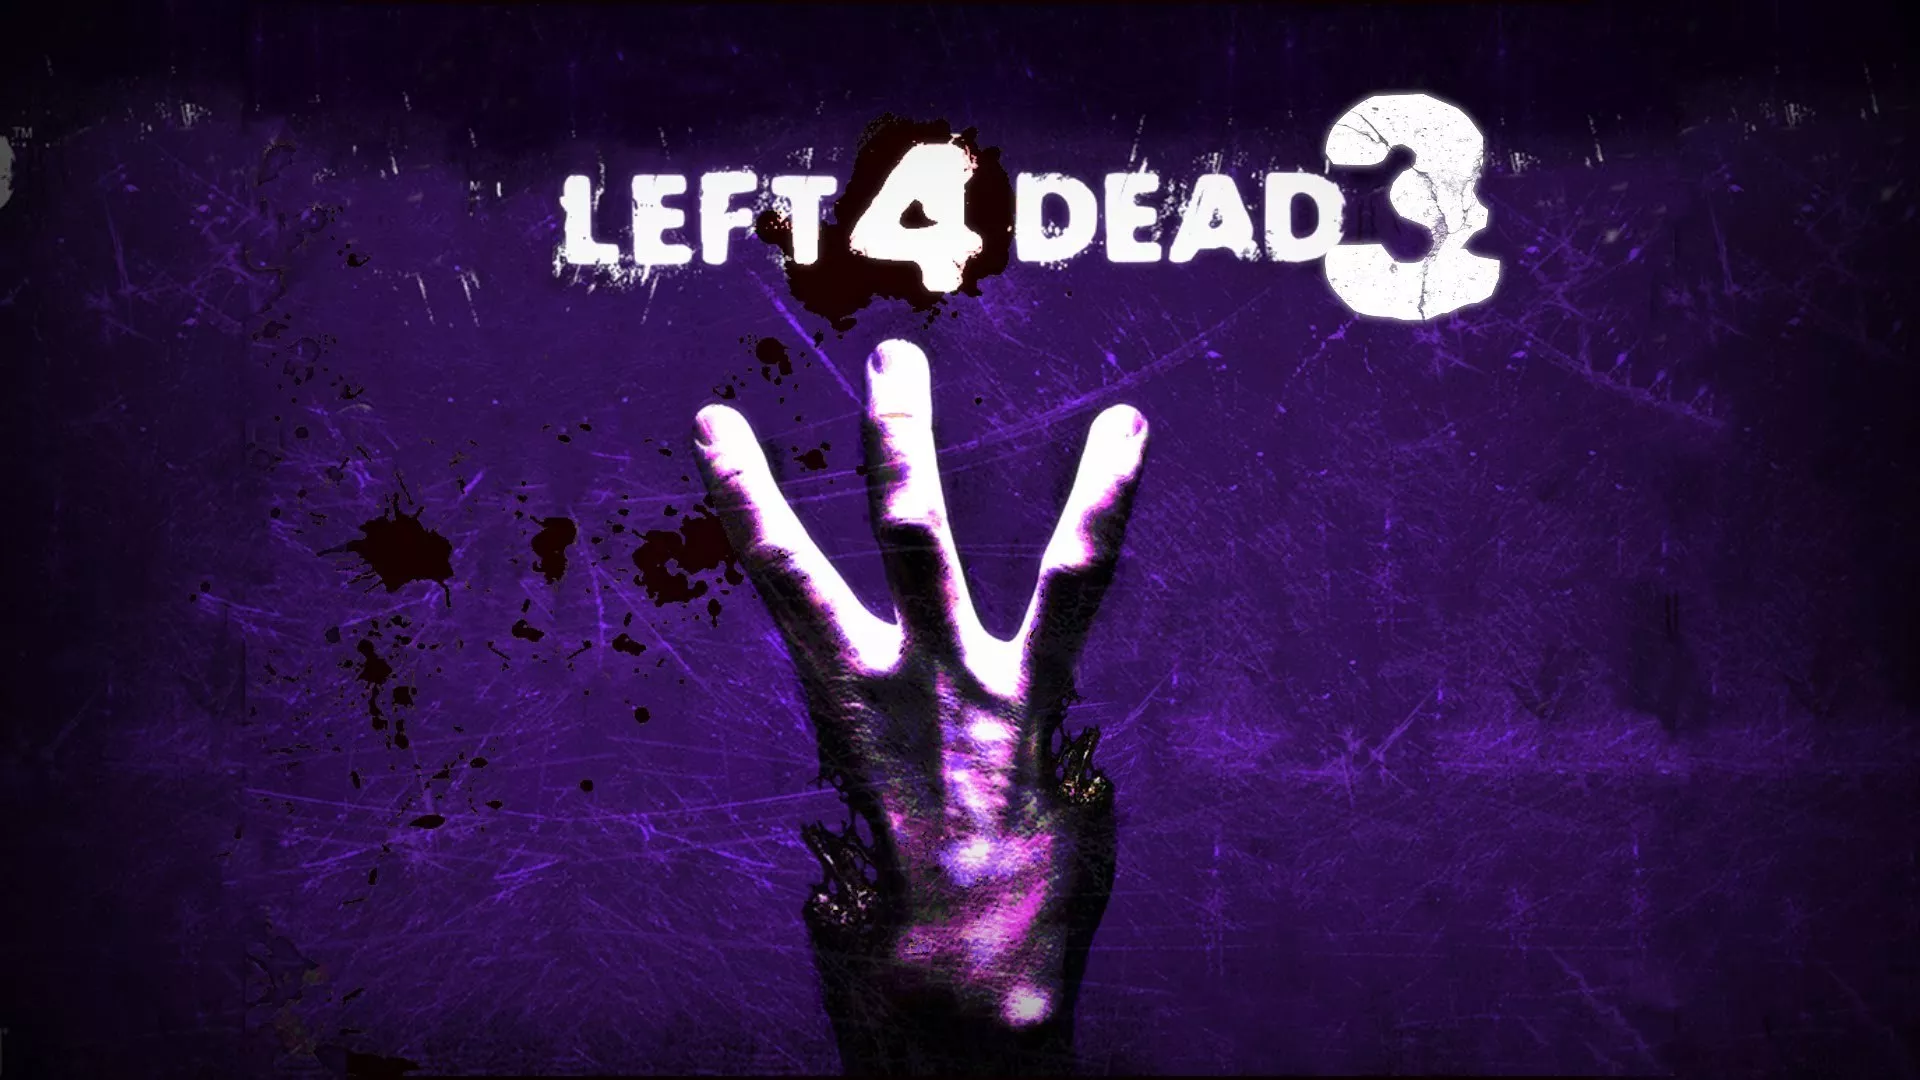 Left 4 Dead 3 Wallpapers Images Photos Pictures Backgrounds